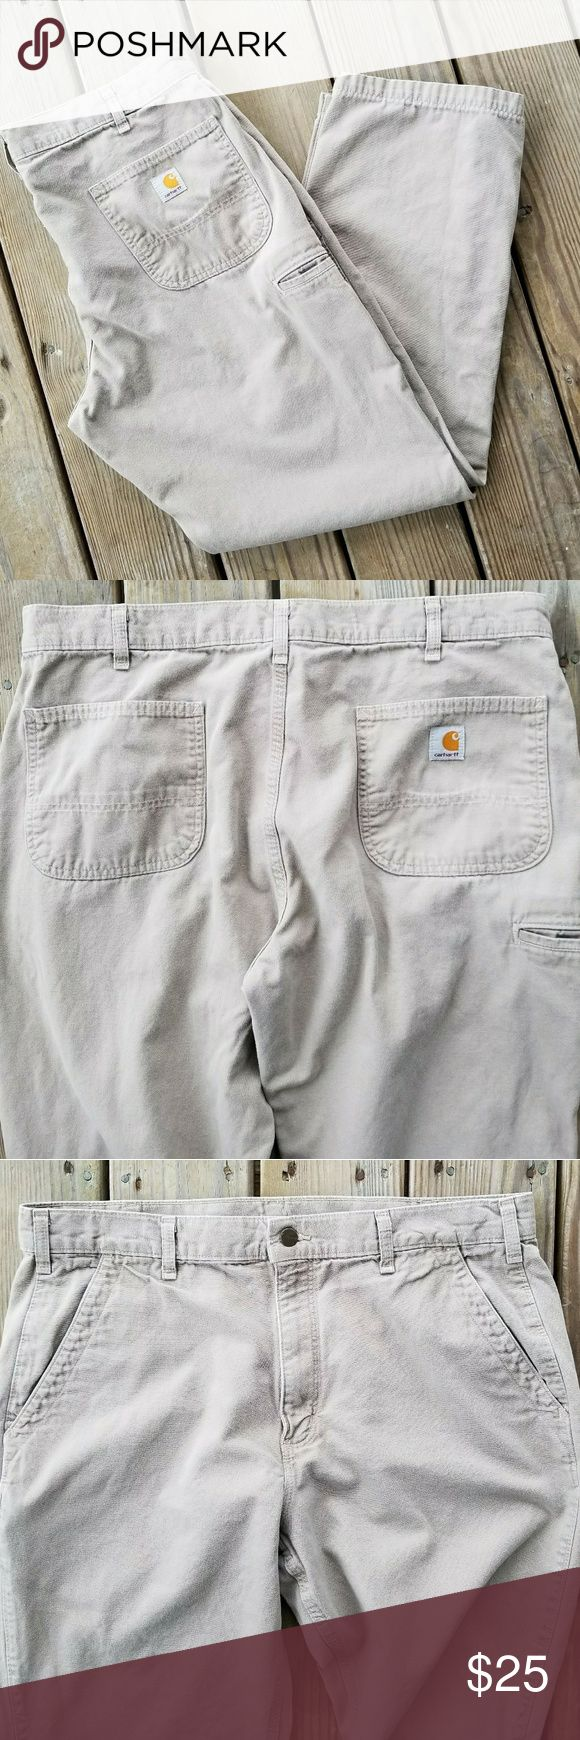 "Carhartt men's light khaki pants Carhartt light tan khaki pants. Sz 38 X 32. EUC. No damage, stains or holes. Minimal wear.  Inseam: 32"" Rise: 13"" Waist (of jeans): 19"" Ankle width: 9.5"" ***All Measurements are done flat and are approx.  ☆Smoke Free home  ☆Best offer Carhartt Pants"